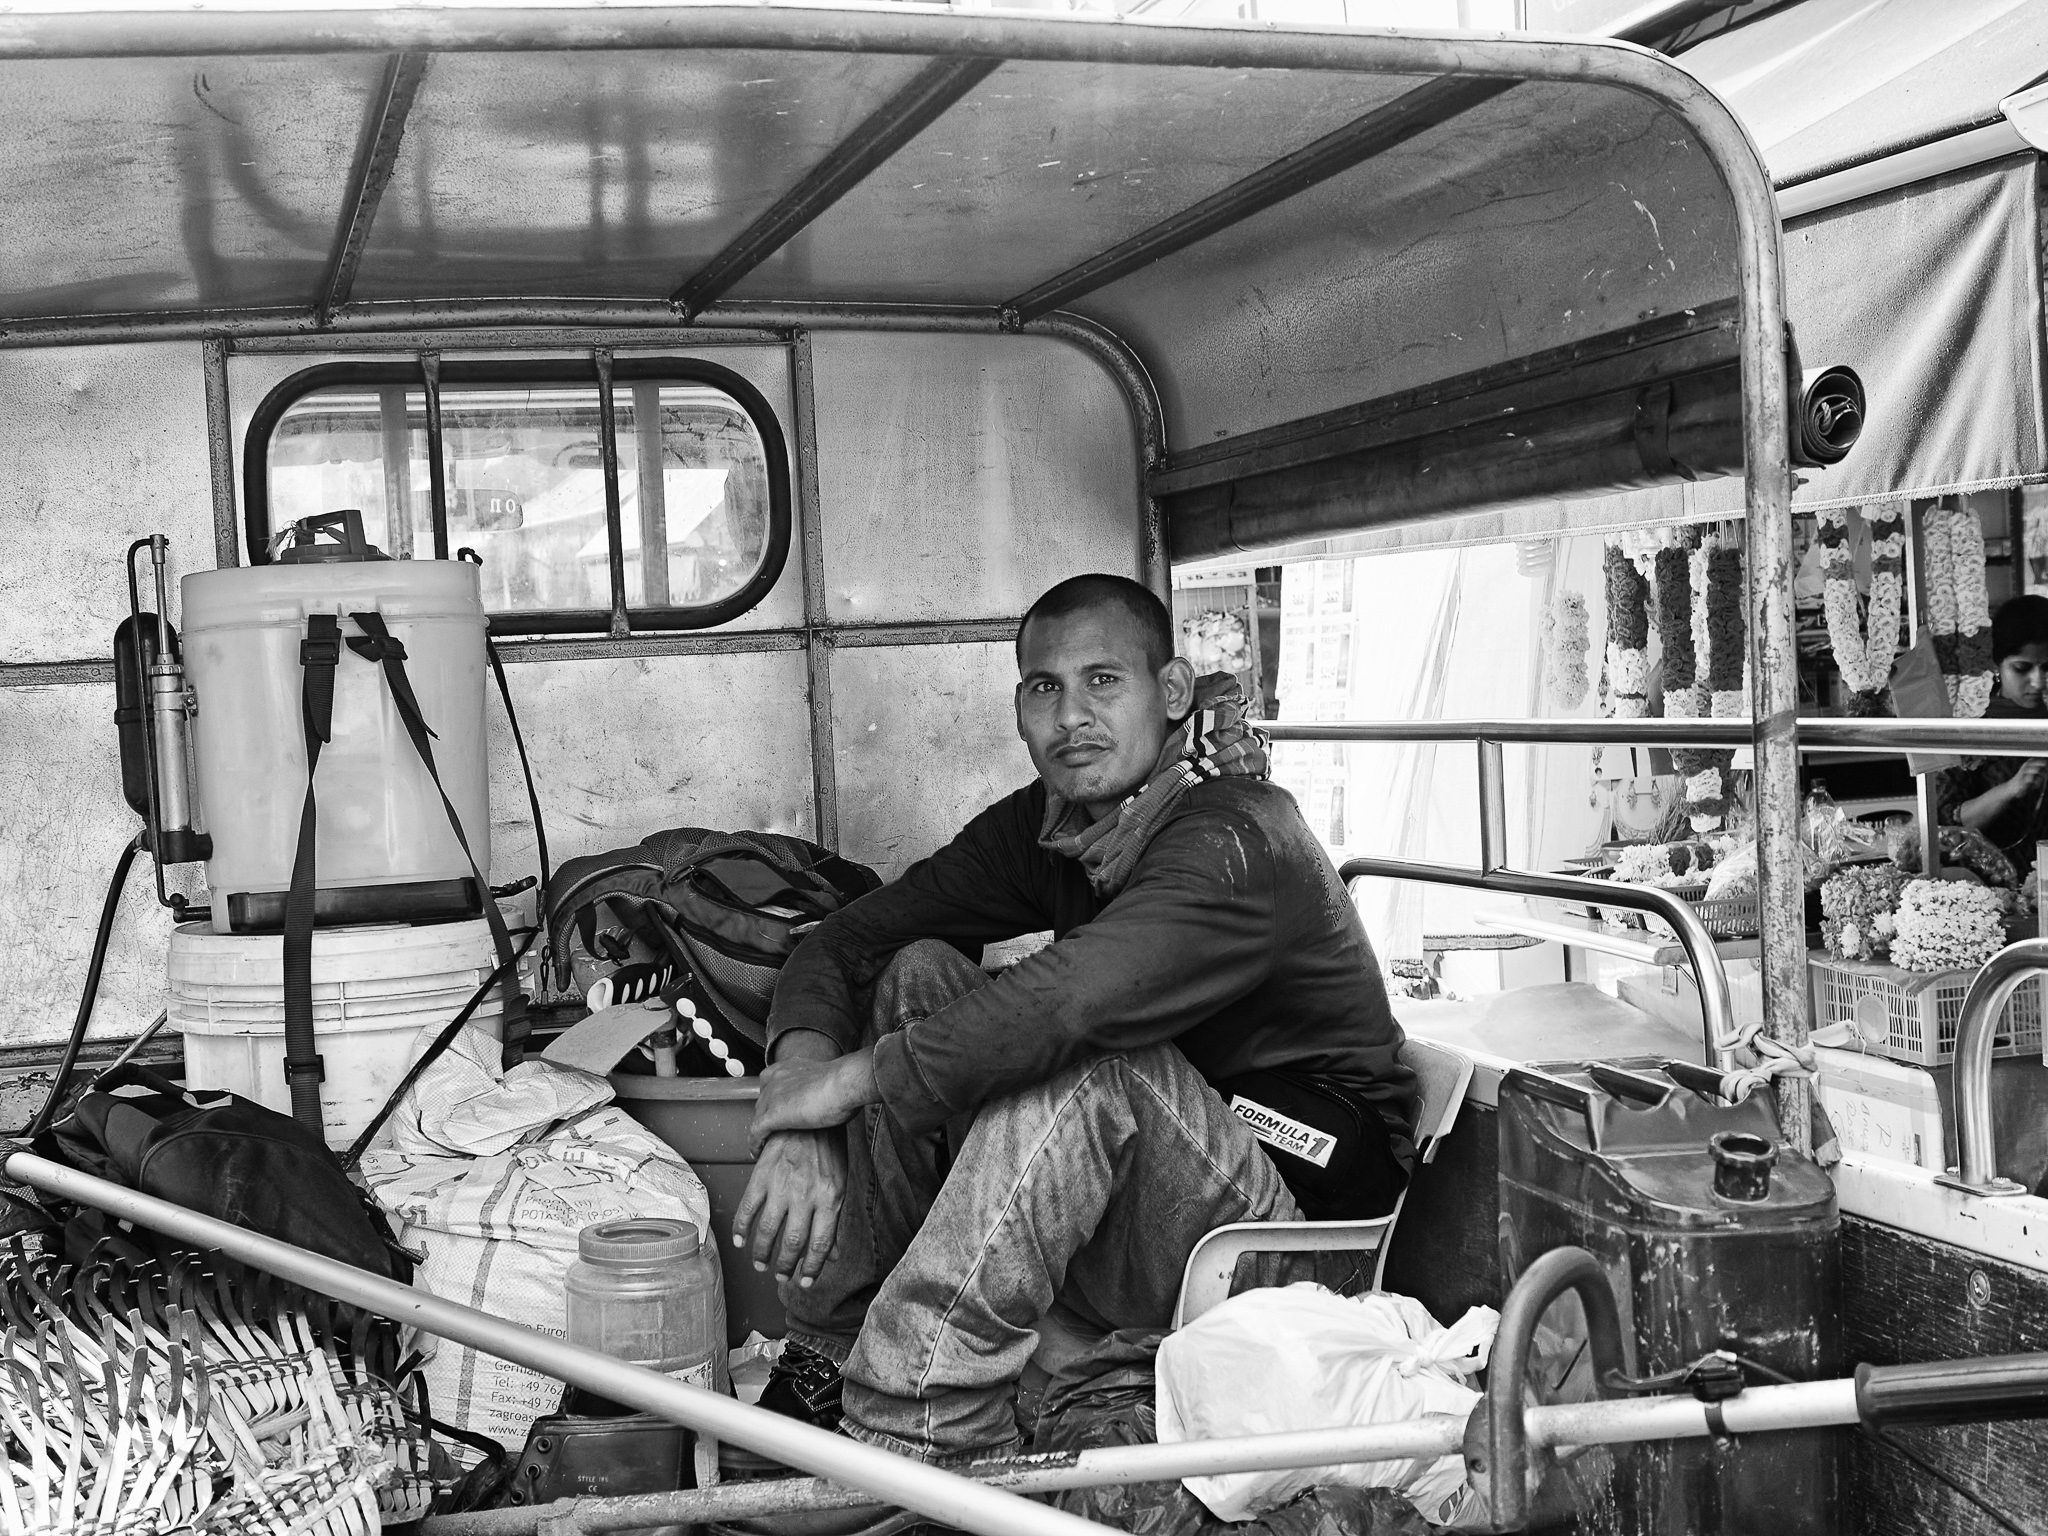 An immigrant worker in the back up of the pickup lorry amongst the construction materials, Little India, Singapore